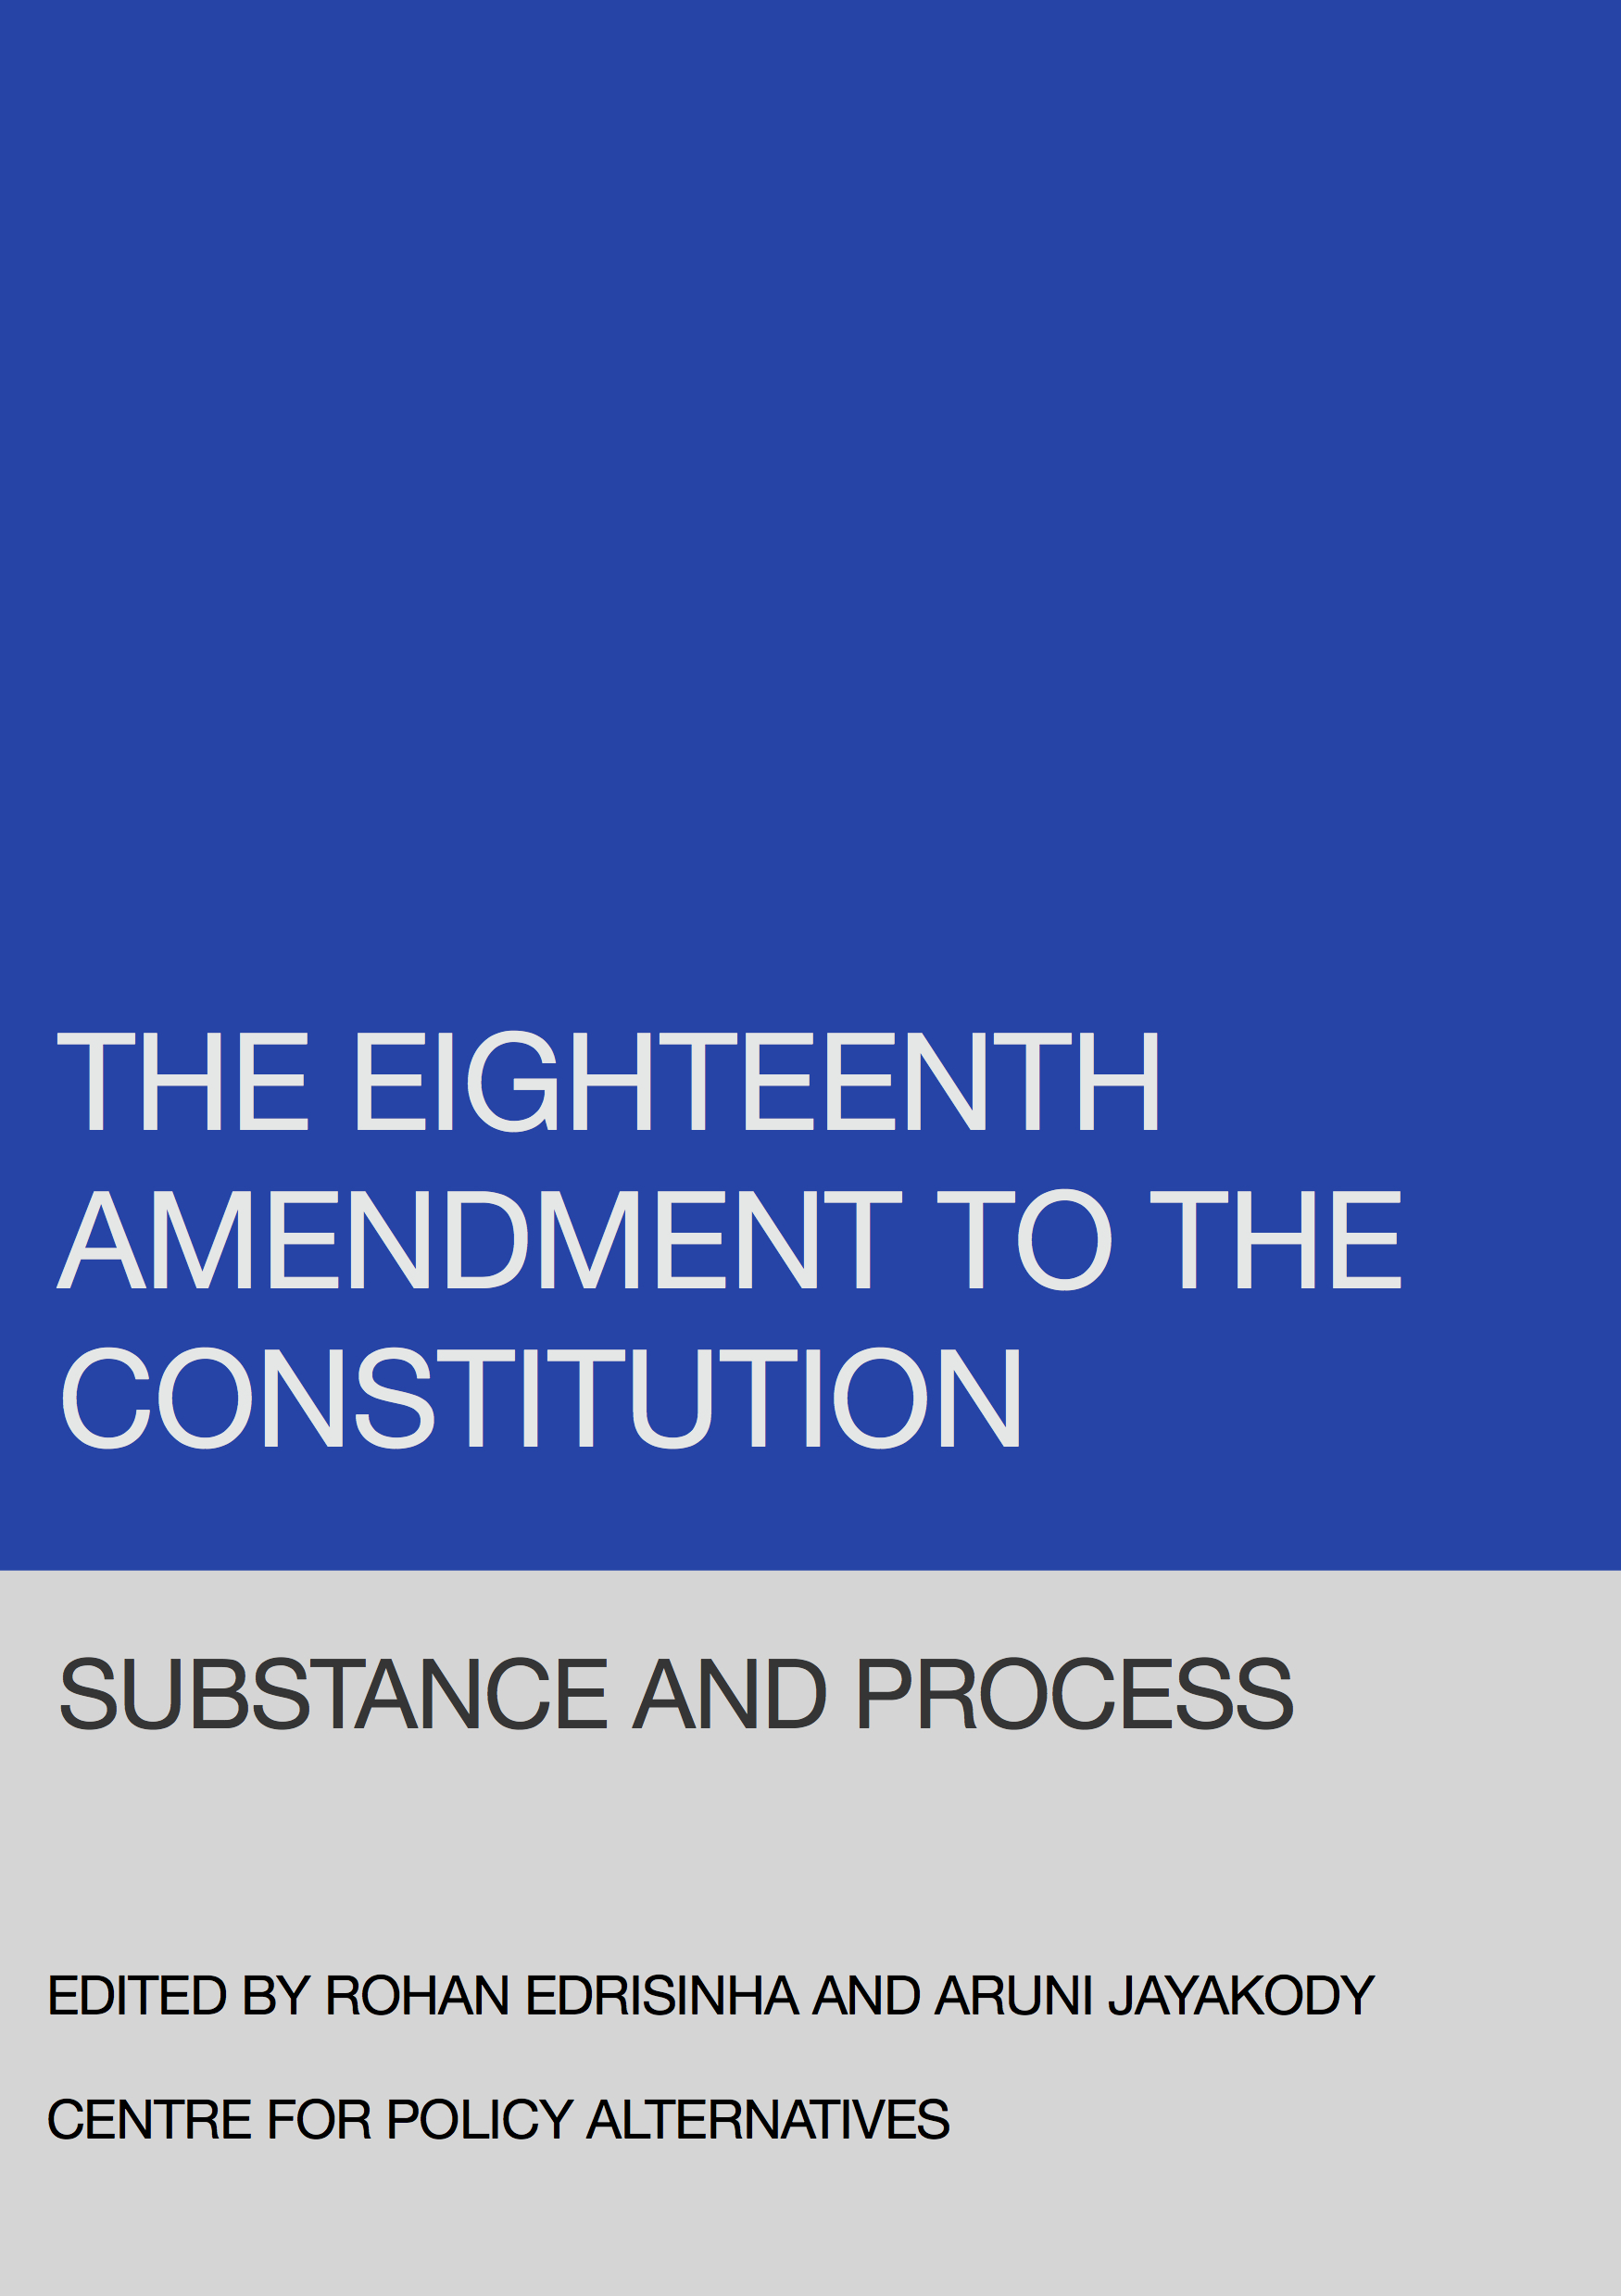 the 18th amendment essay Progressive era: c1900-1920 amendment xvi  believe that the progressive era amendments are less important is that they have not generated much litigation,.